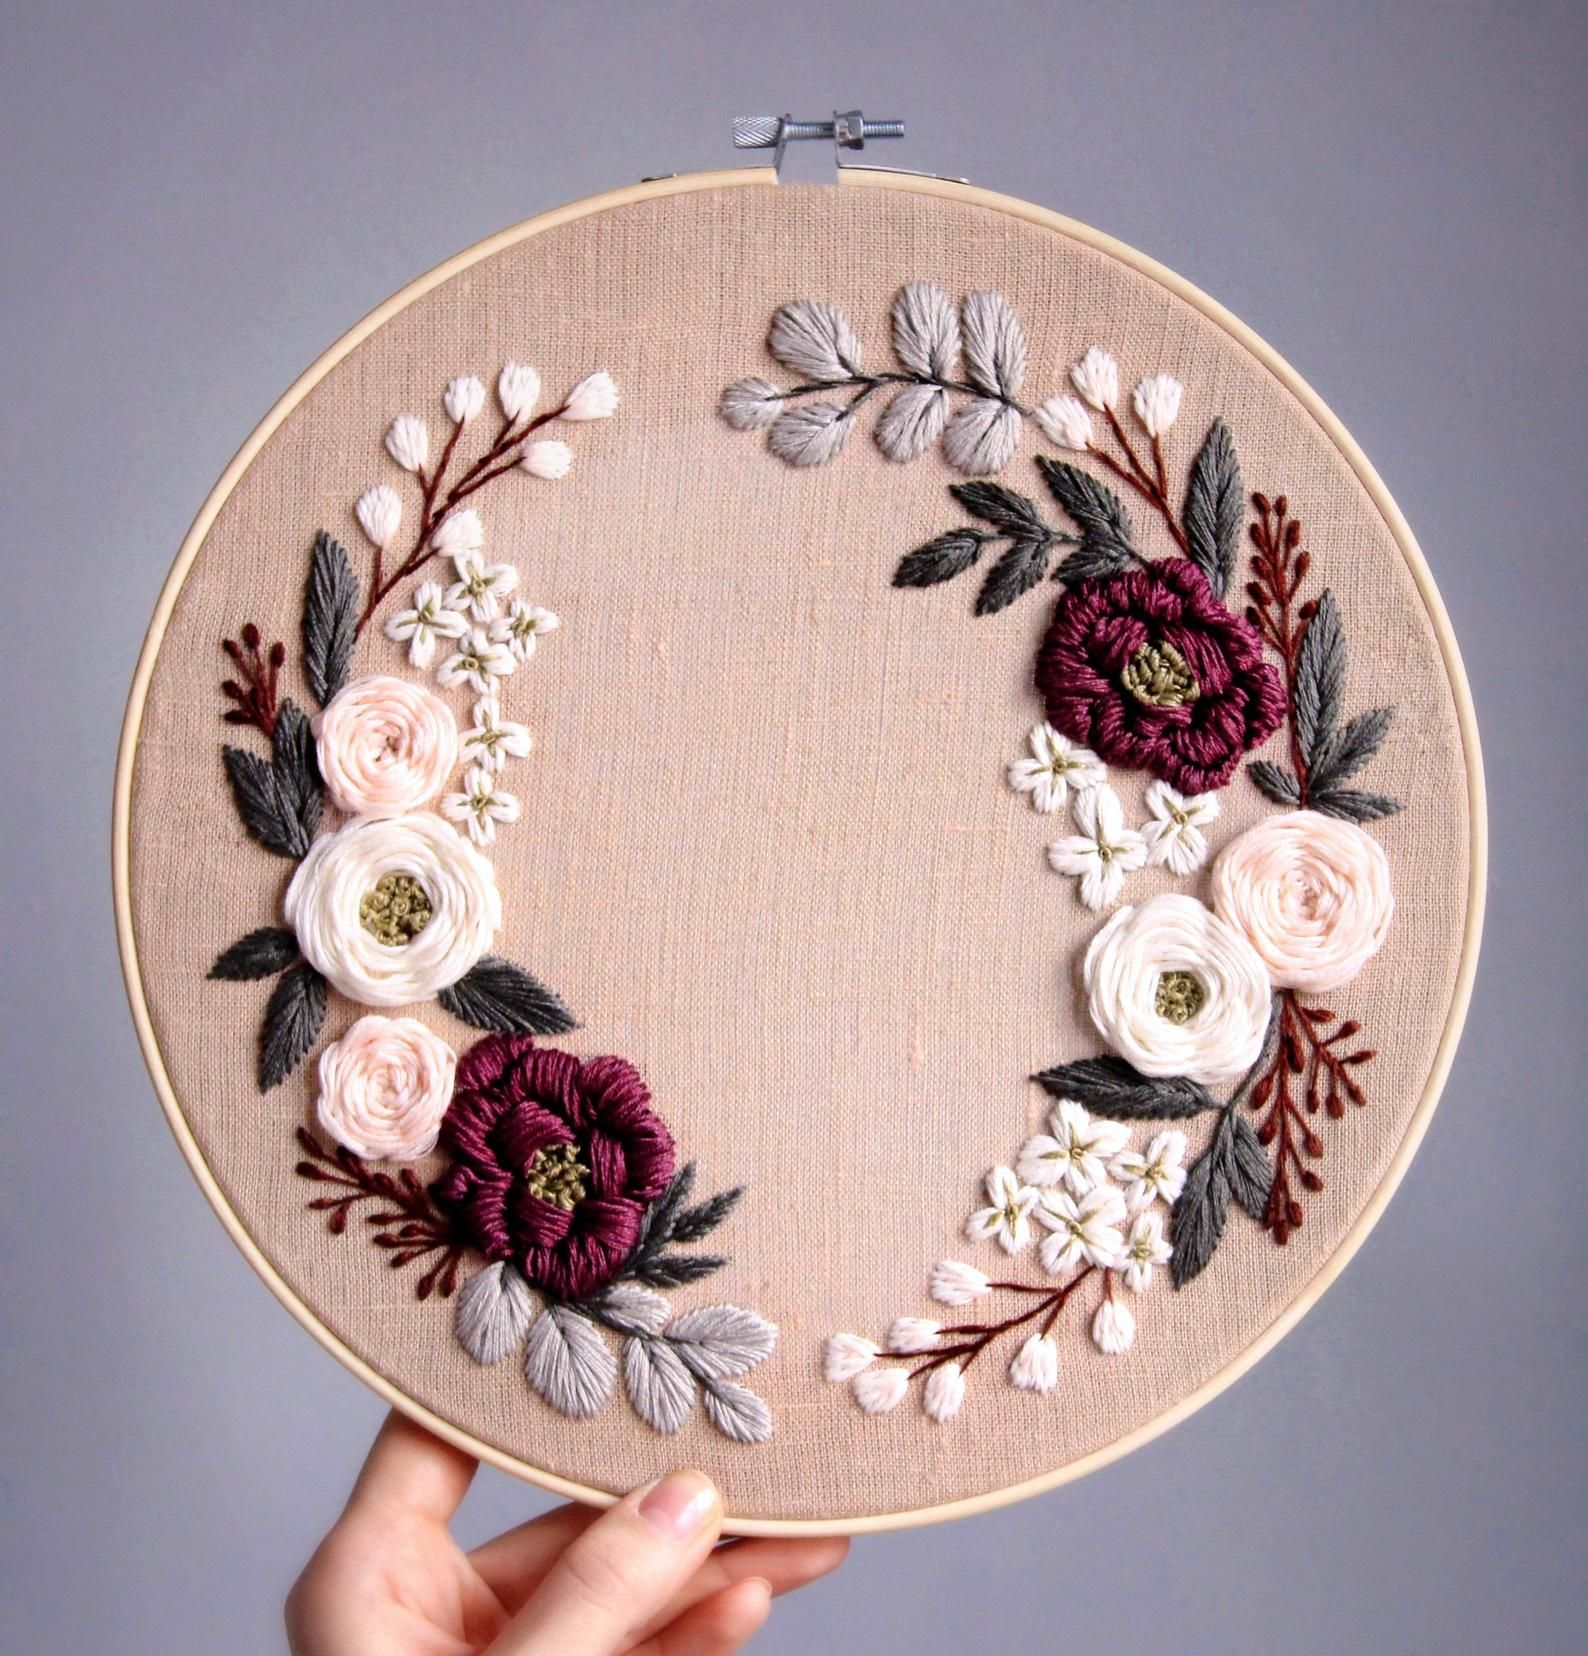 decorative frame textured art gift embroidery hoop kids decor punch needle 140 Unicorn embroidery